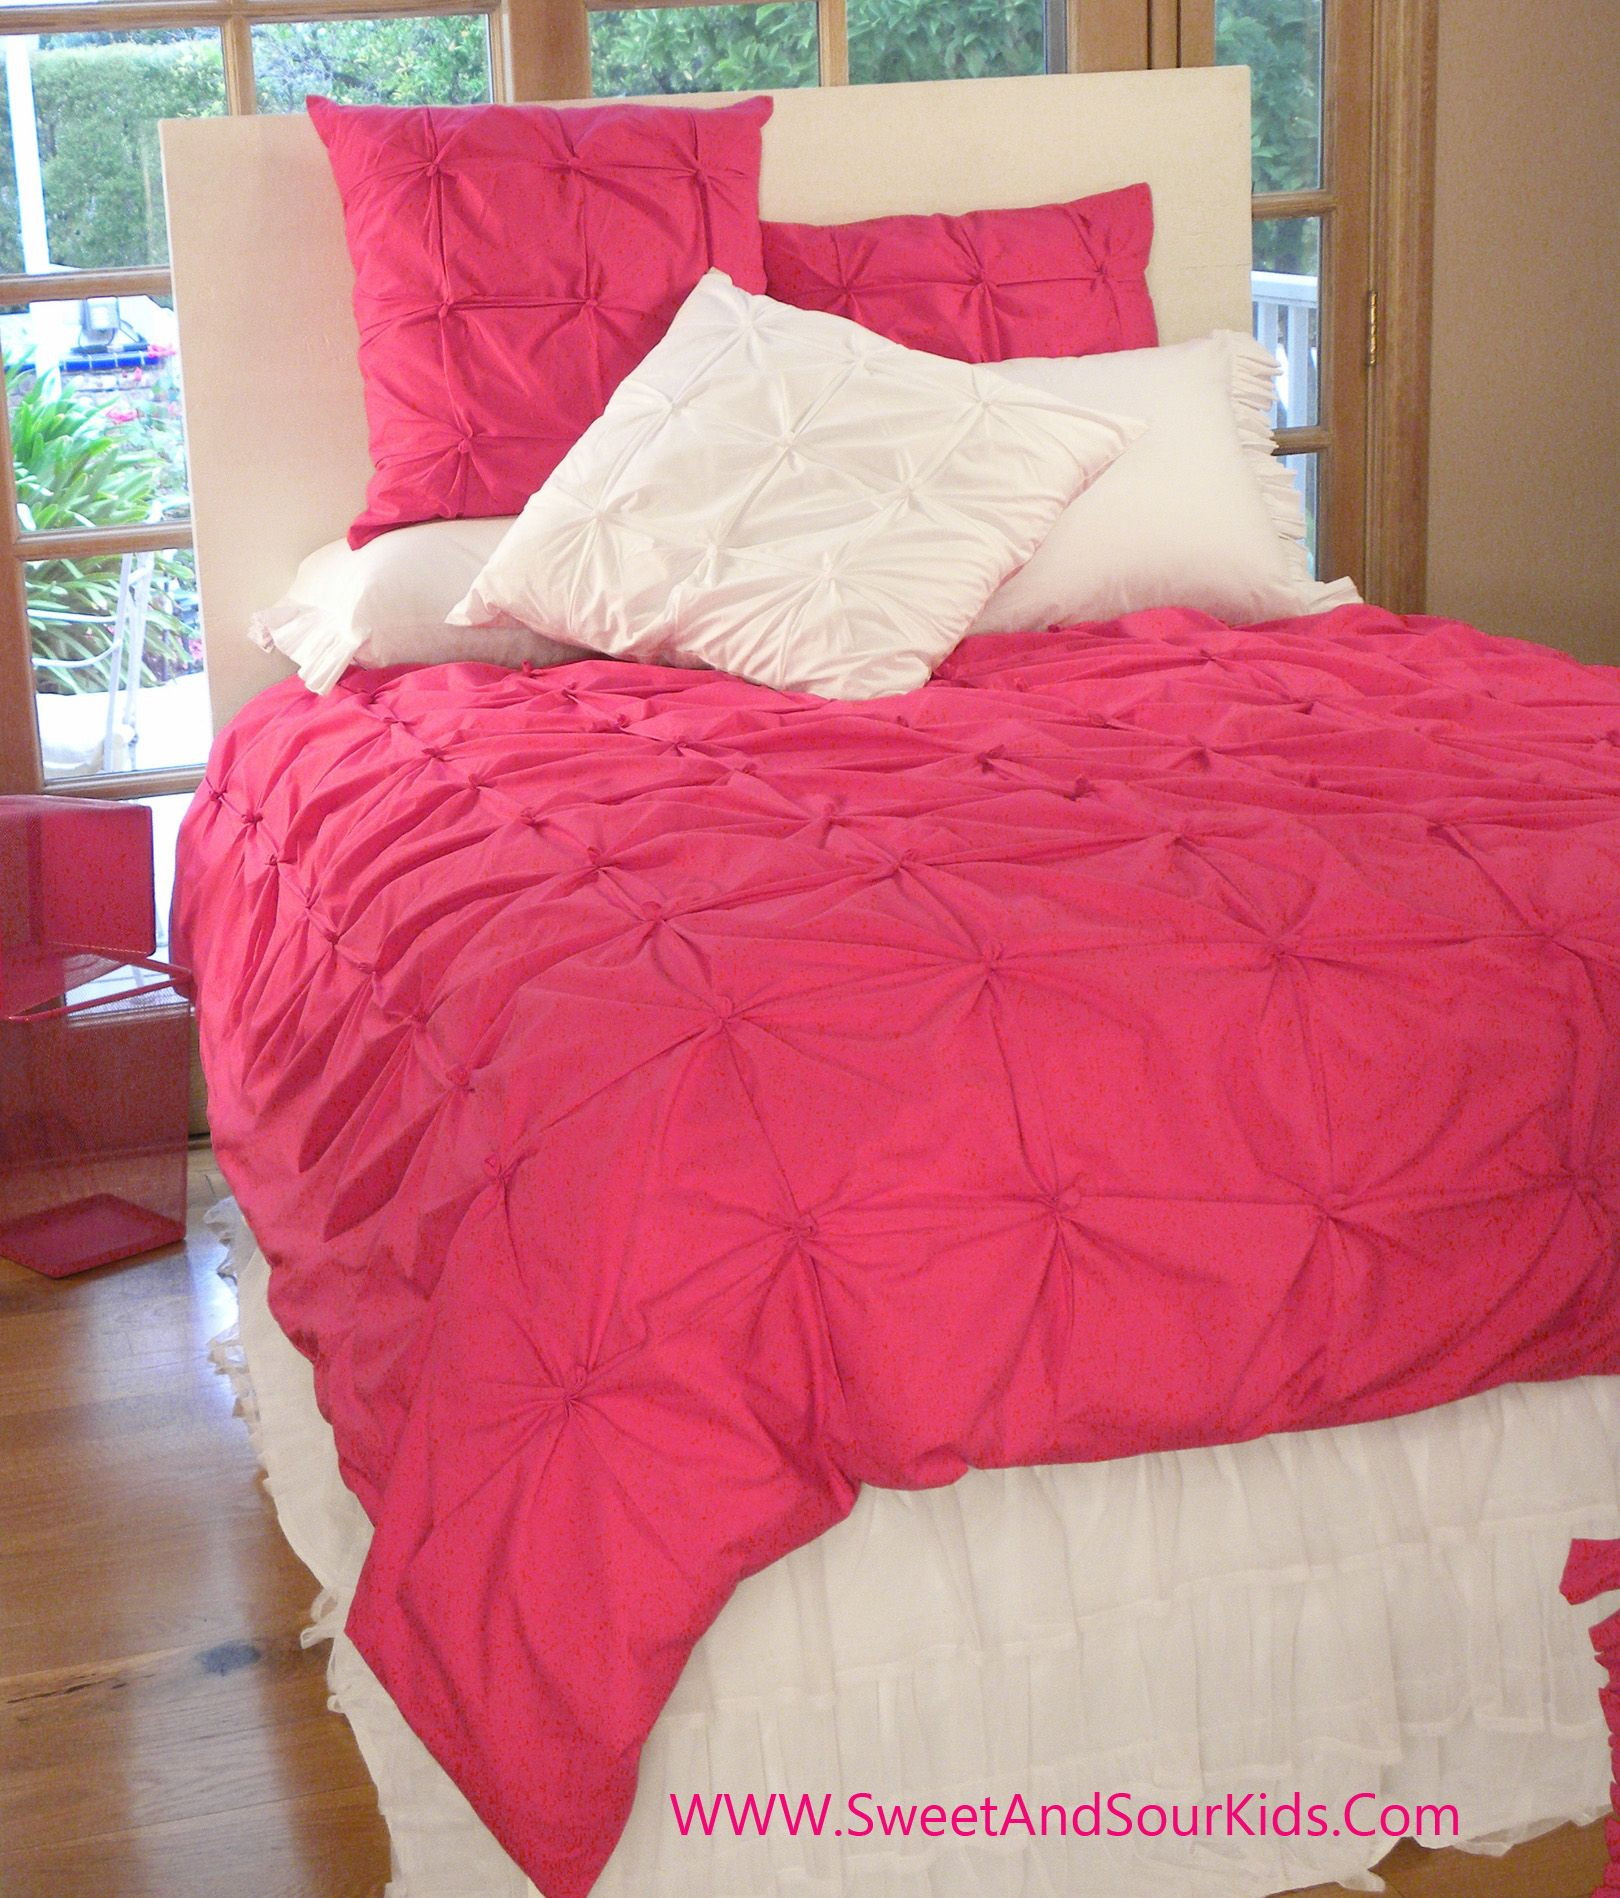 The Hot Pink Pin Tucked Duvet Cover Is Perfect Stylish Finishing Touch For Your Child S Bedding Part Of